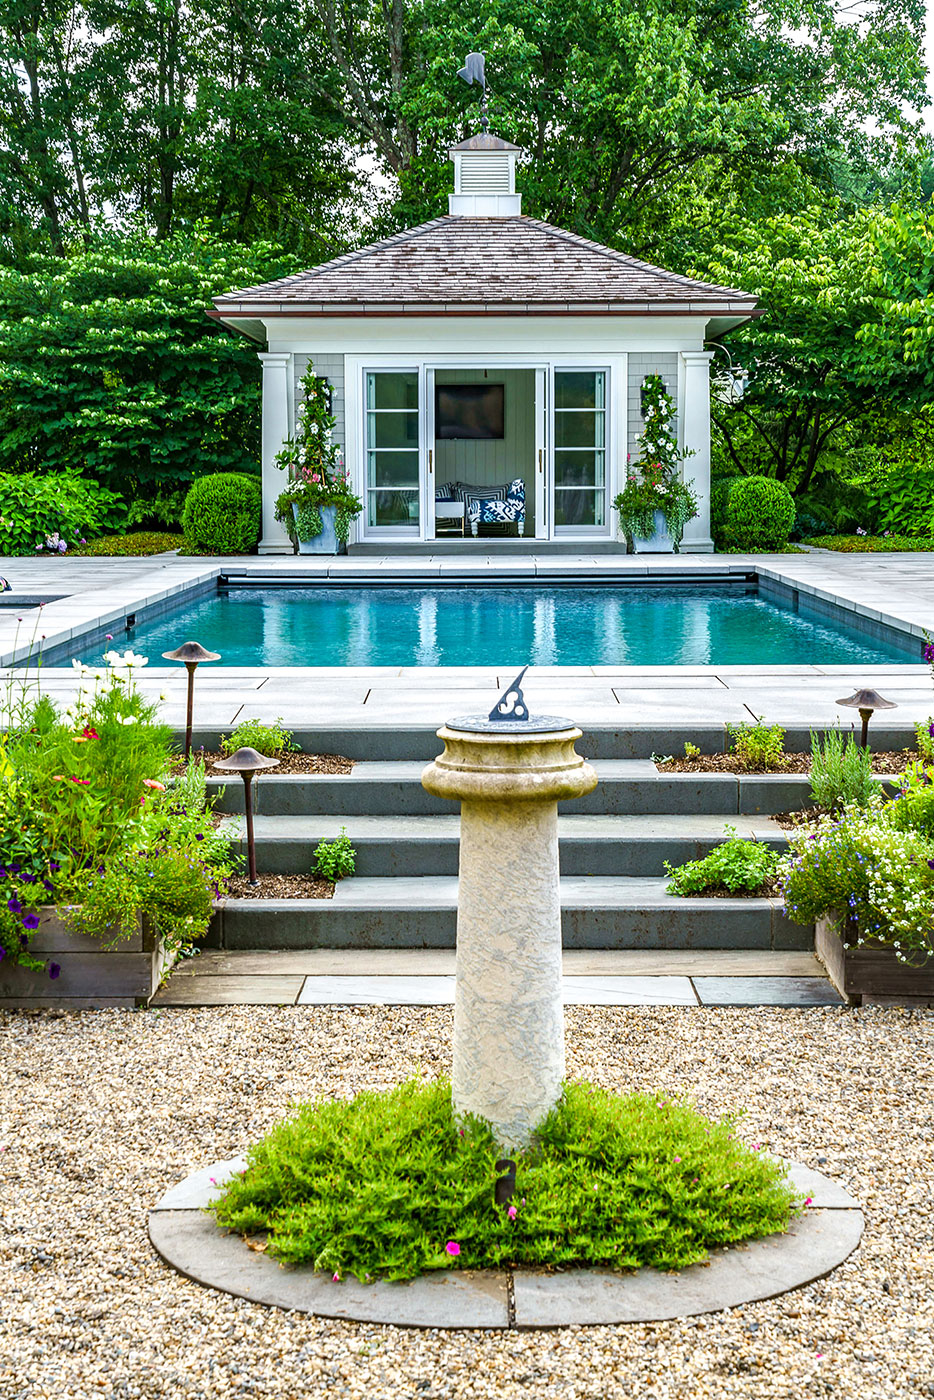 Outdoor Pool and Backyard Oasis by Onyx Corporation